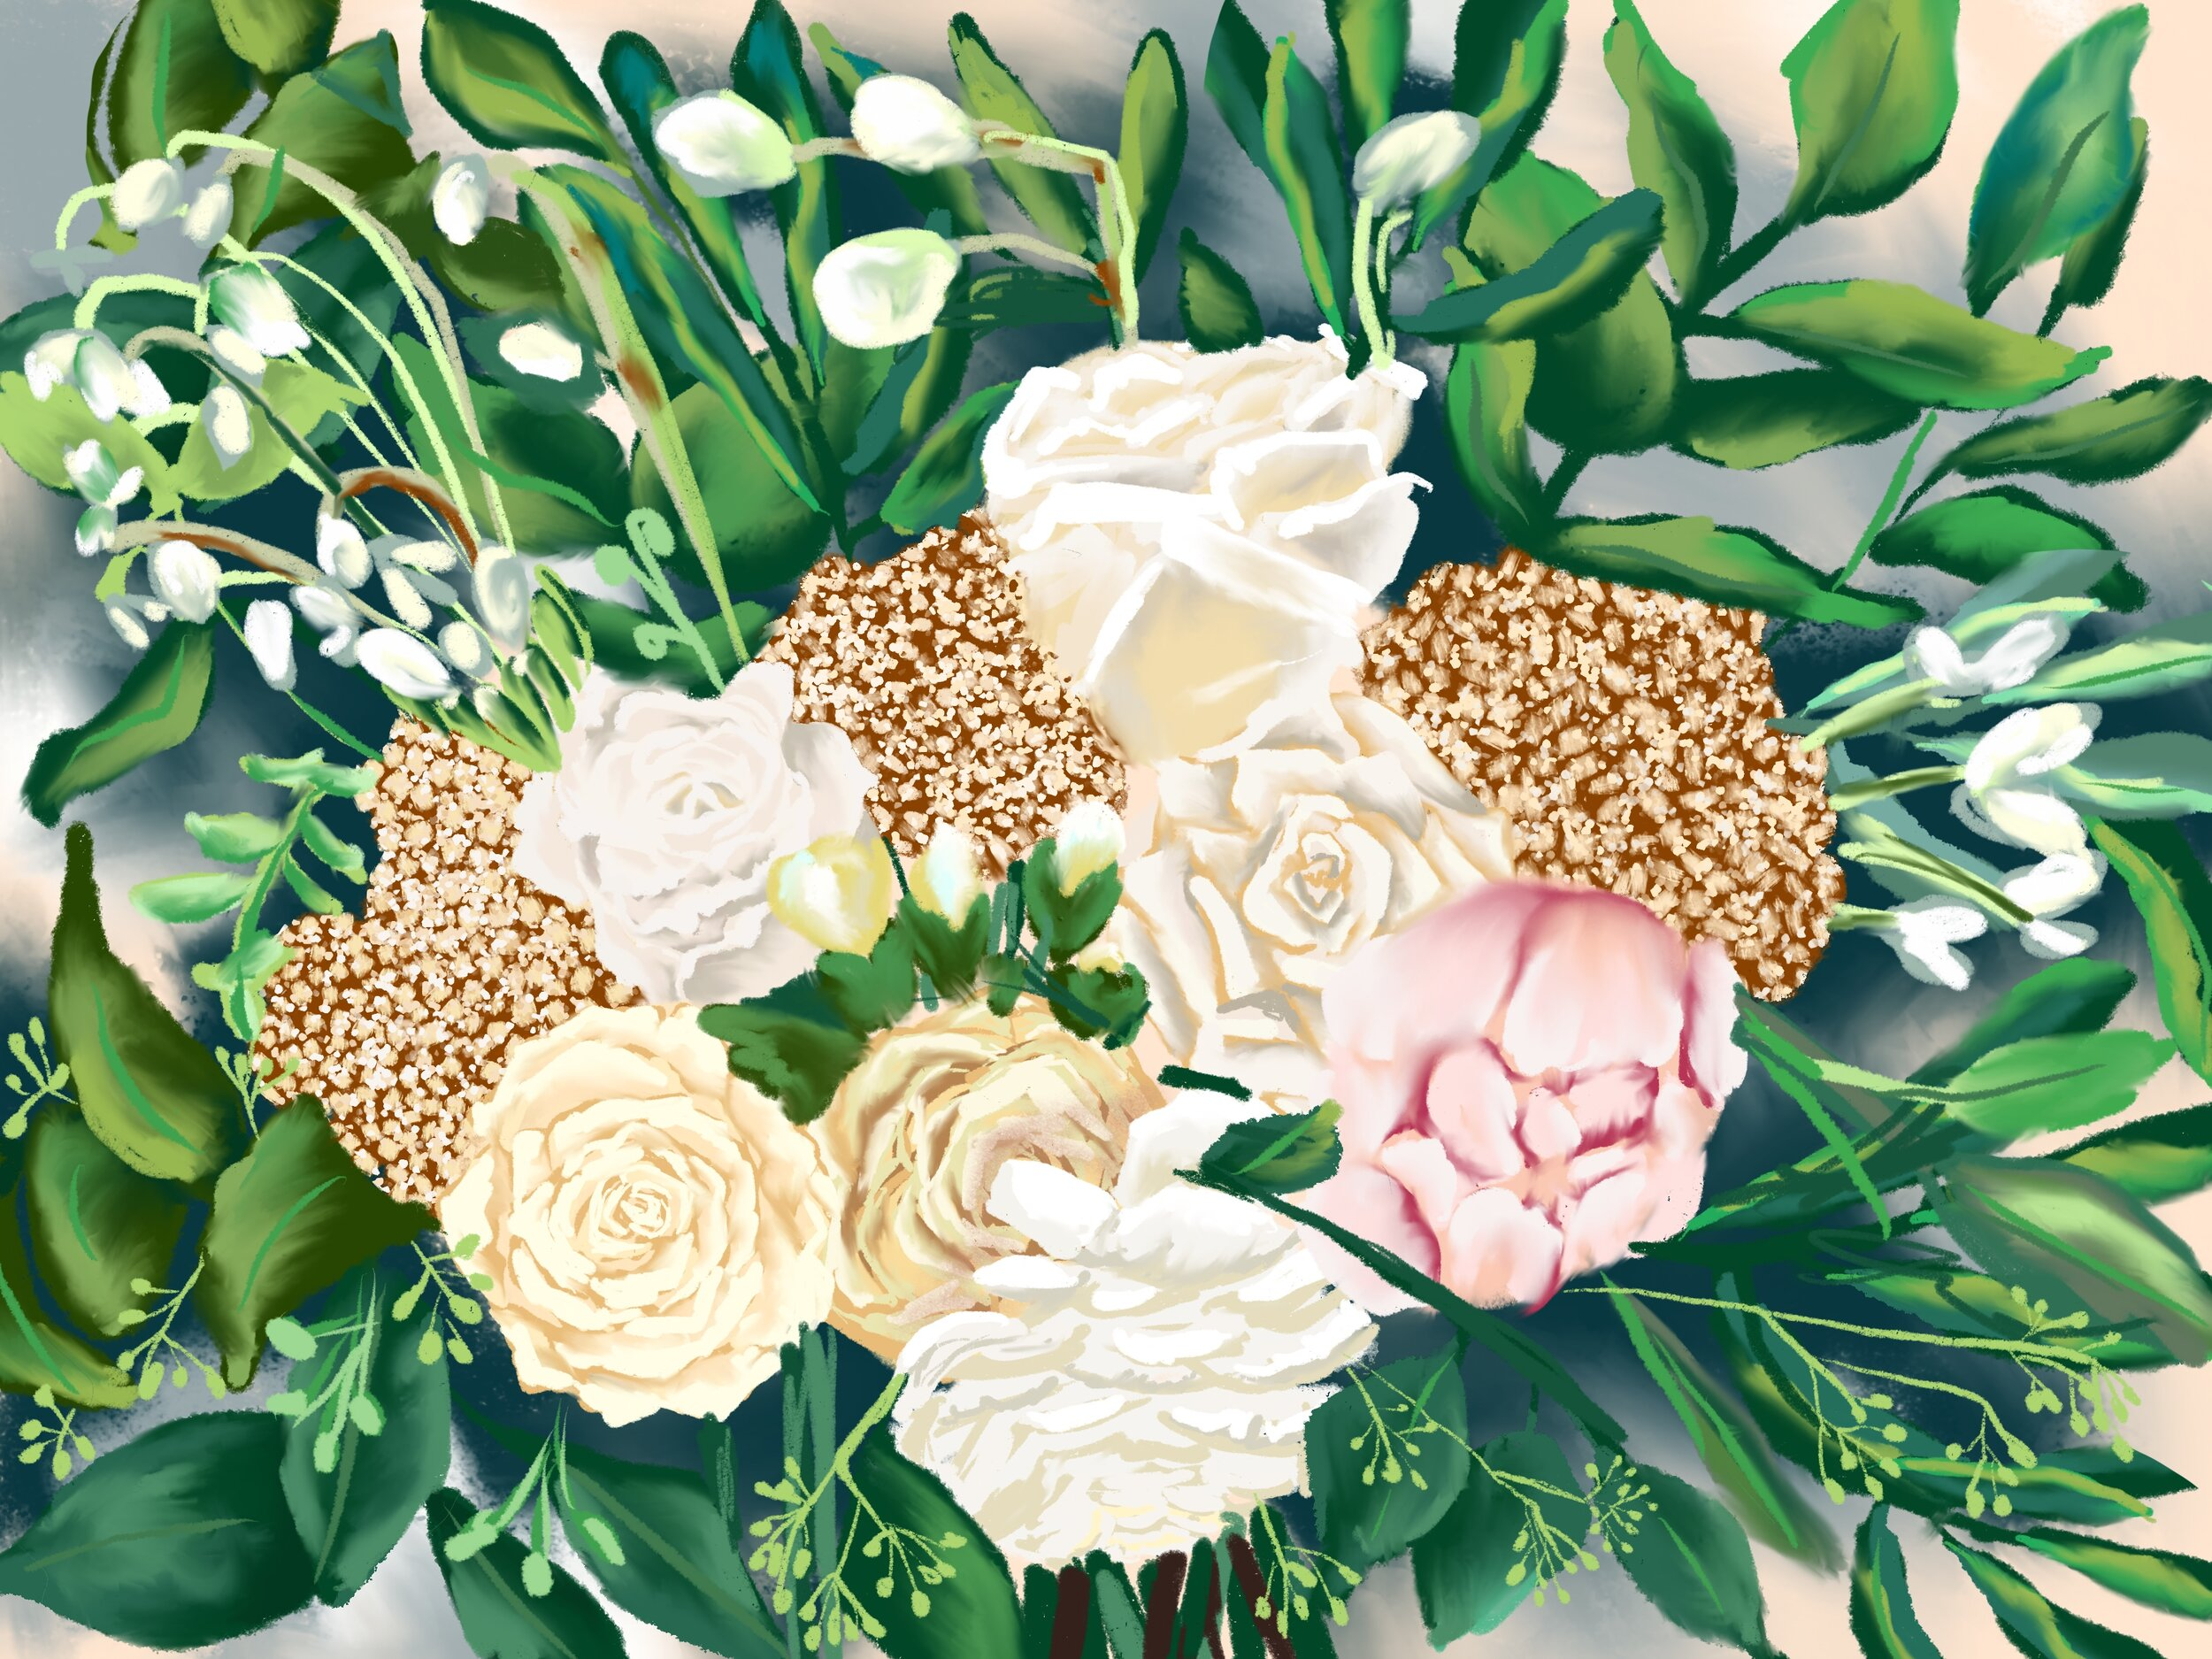 Custom Bridal Bouquet  - This custom illustration was done to commemorate the couples wedding day. Bridal bouquets can be created in watercolor or digital formats.